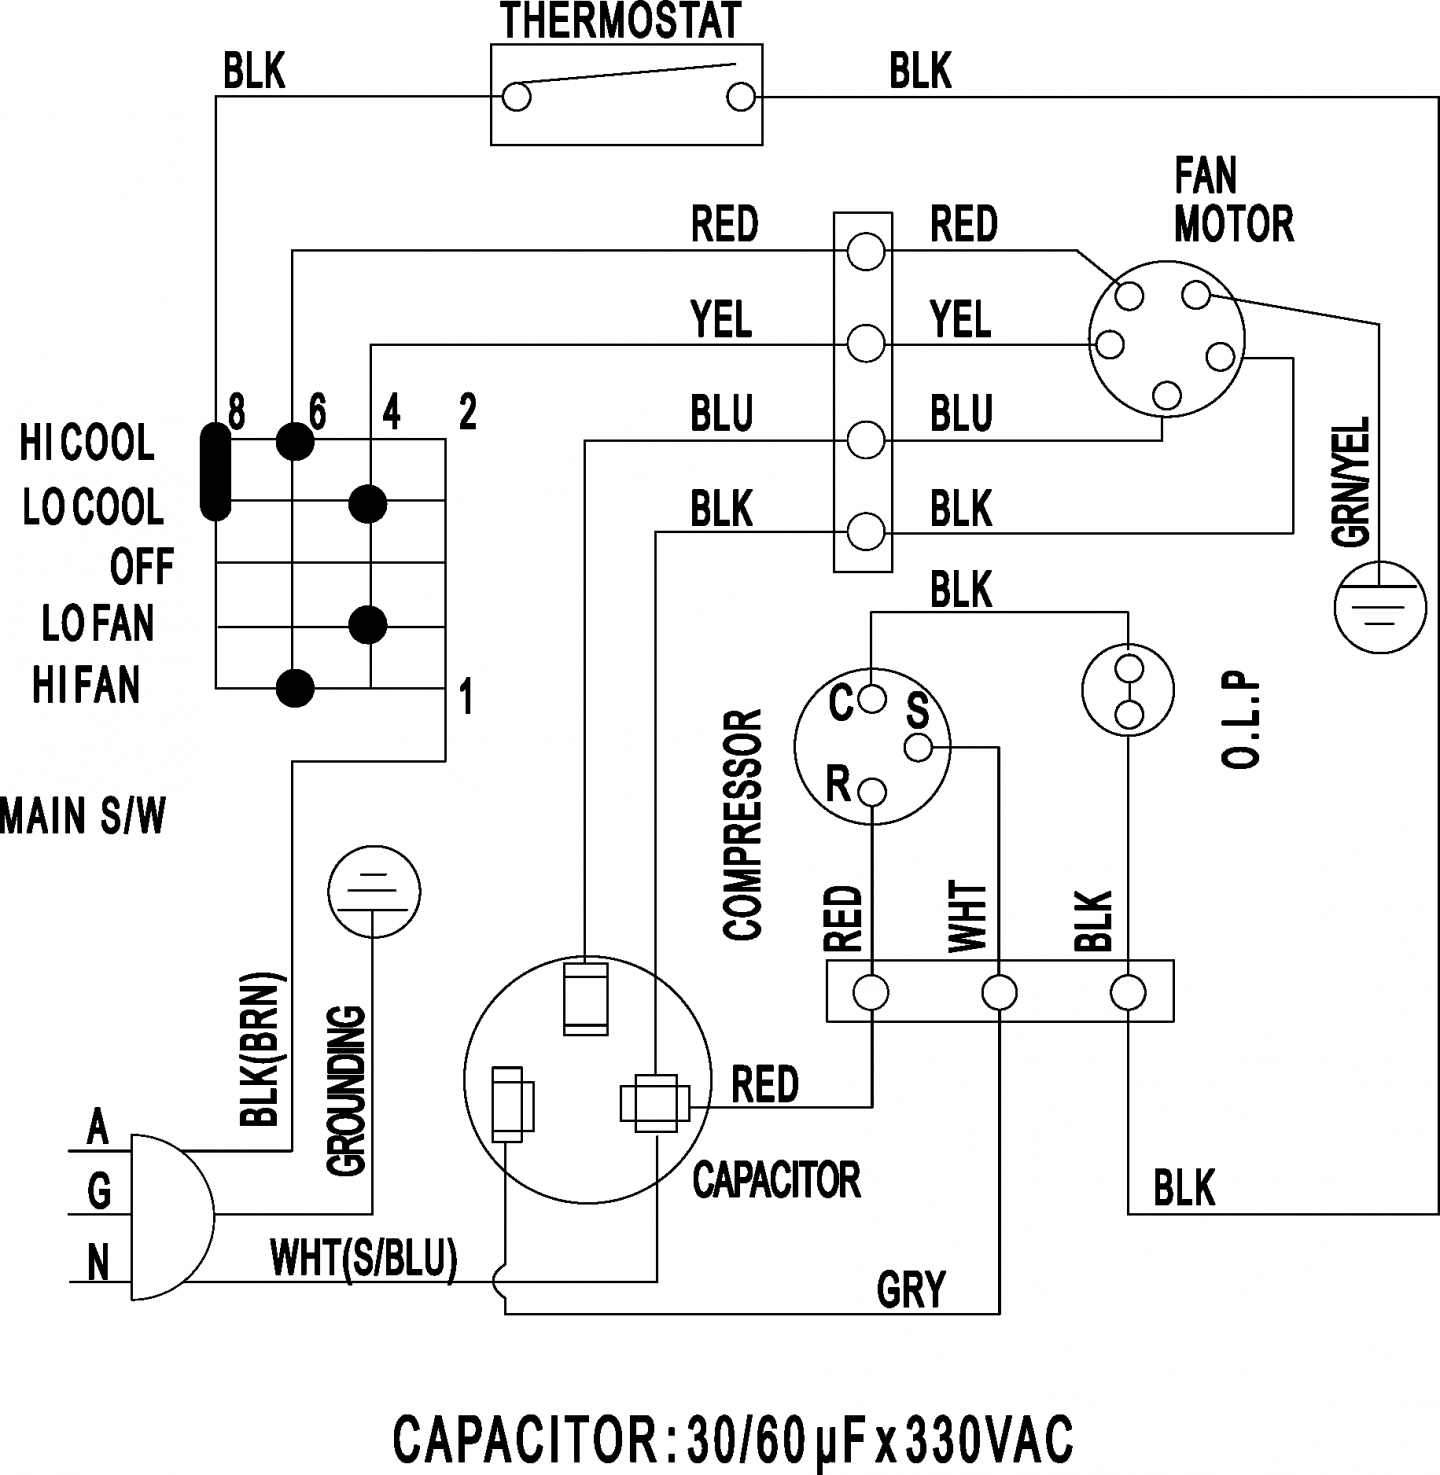 l21 30r wiring diagram | free wiring diagram camper 30 amp rv wiring diagram